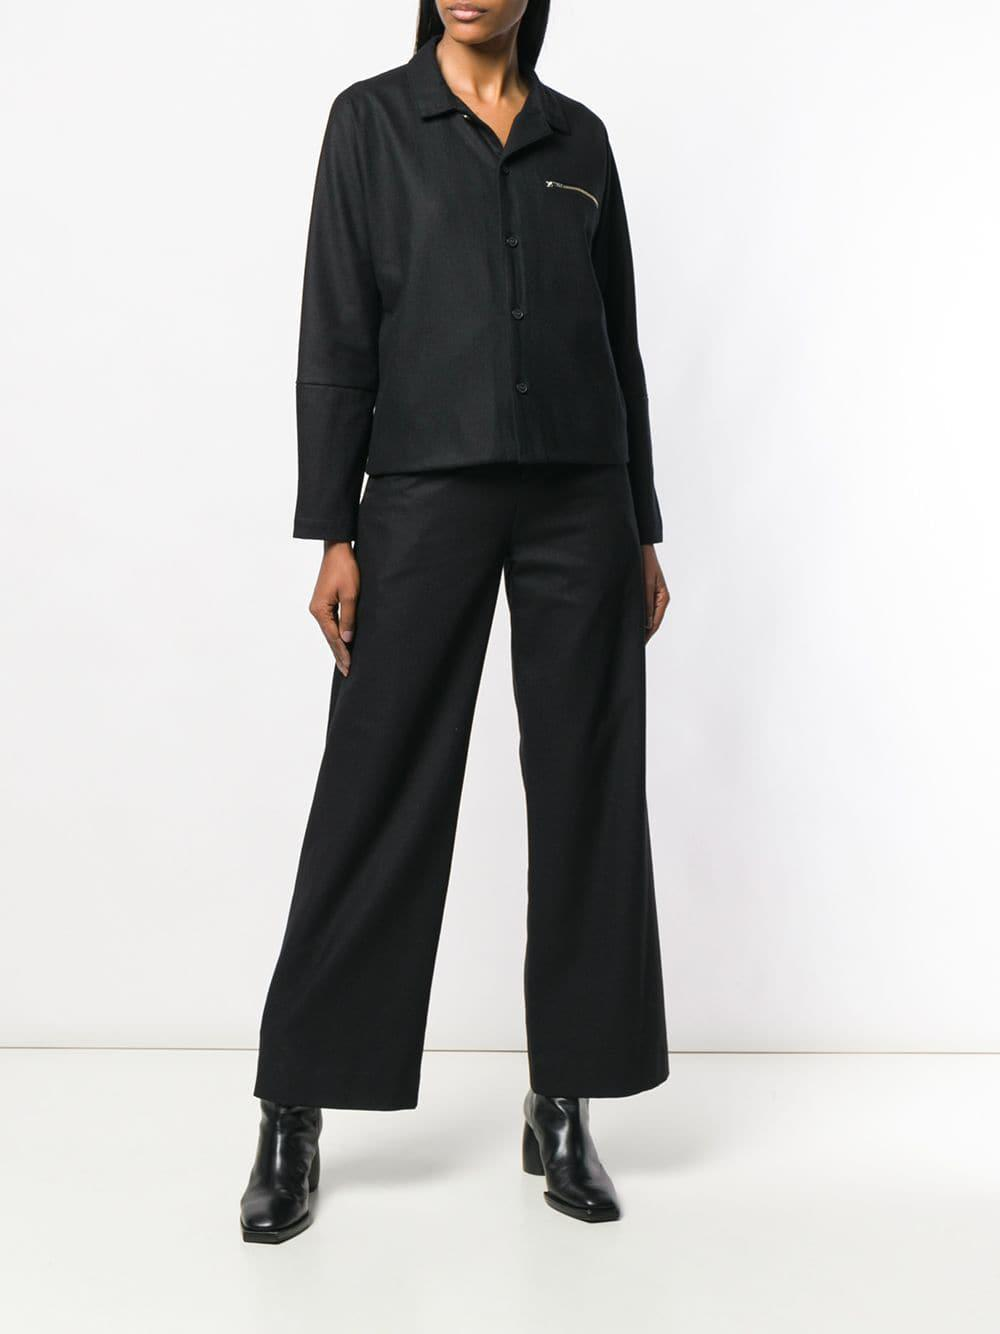 Flared Black Stephan Schneider Pins Trousers Lyst In 6gvY7Iybf